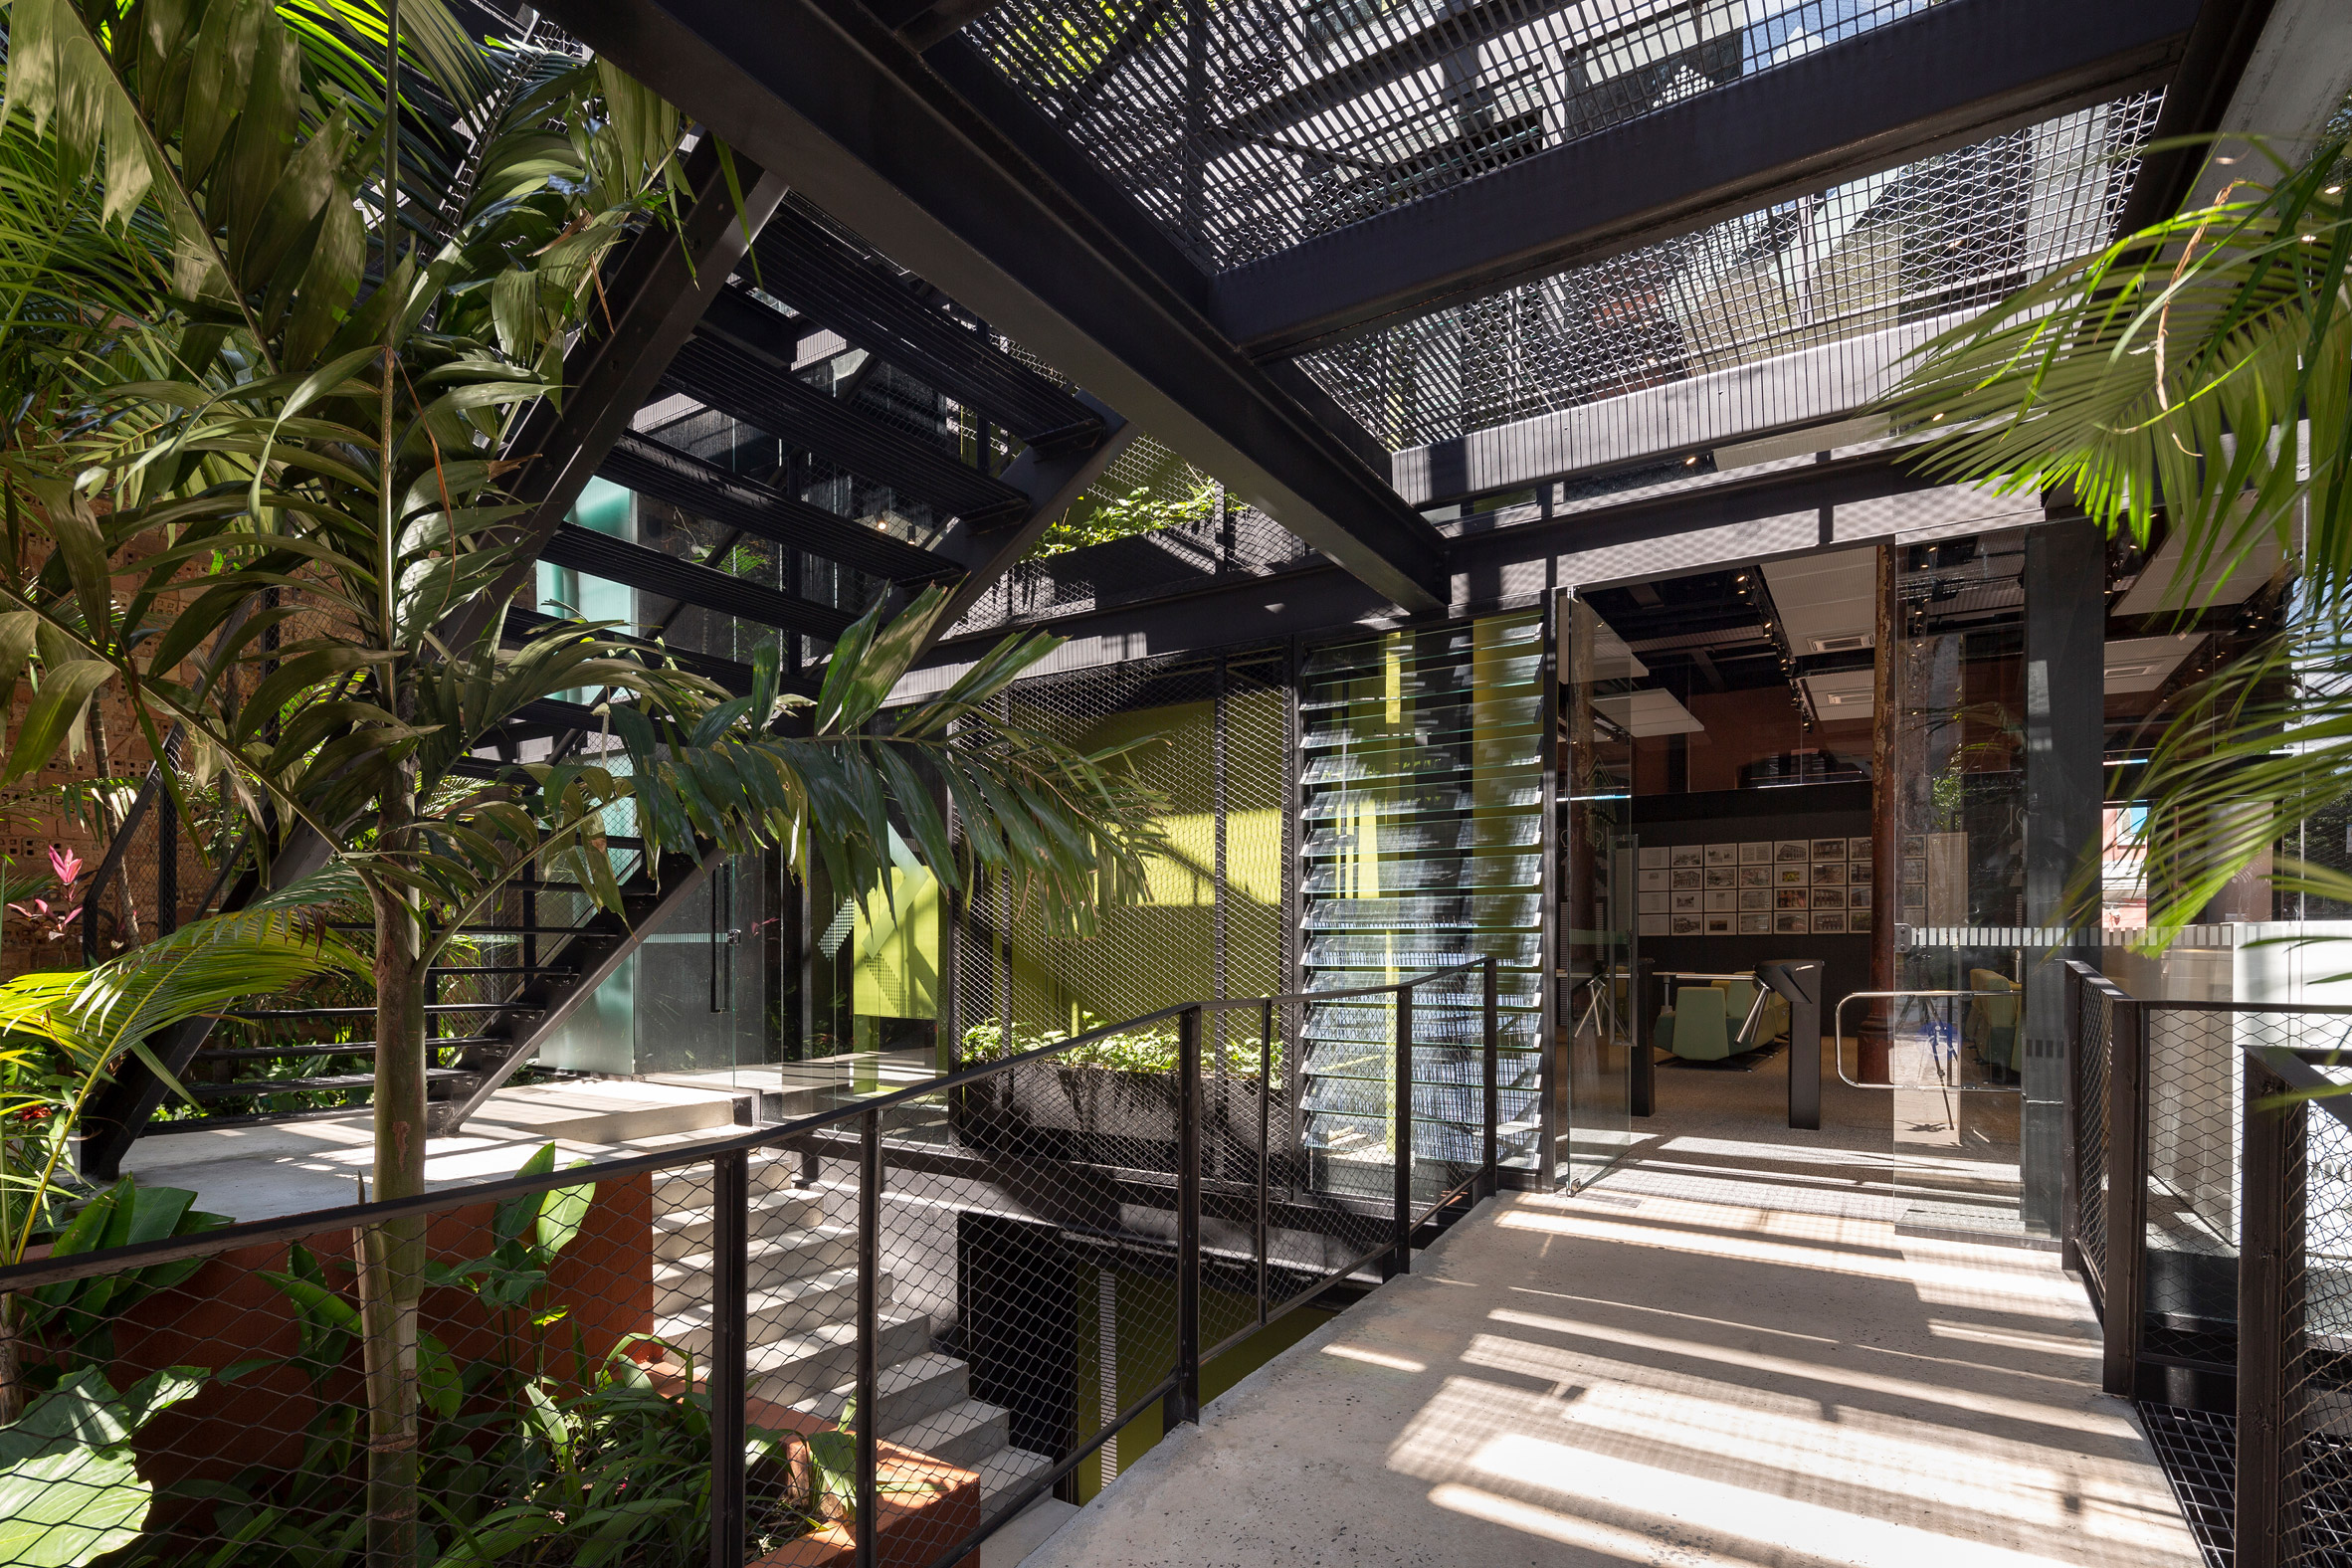 Staircase of co-working space in Brazil